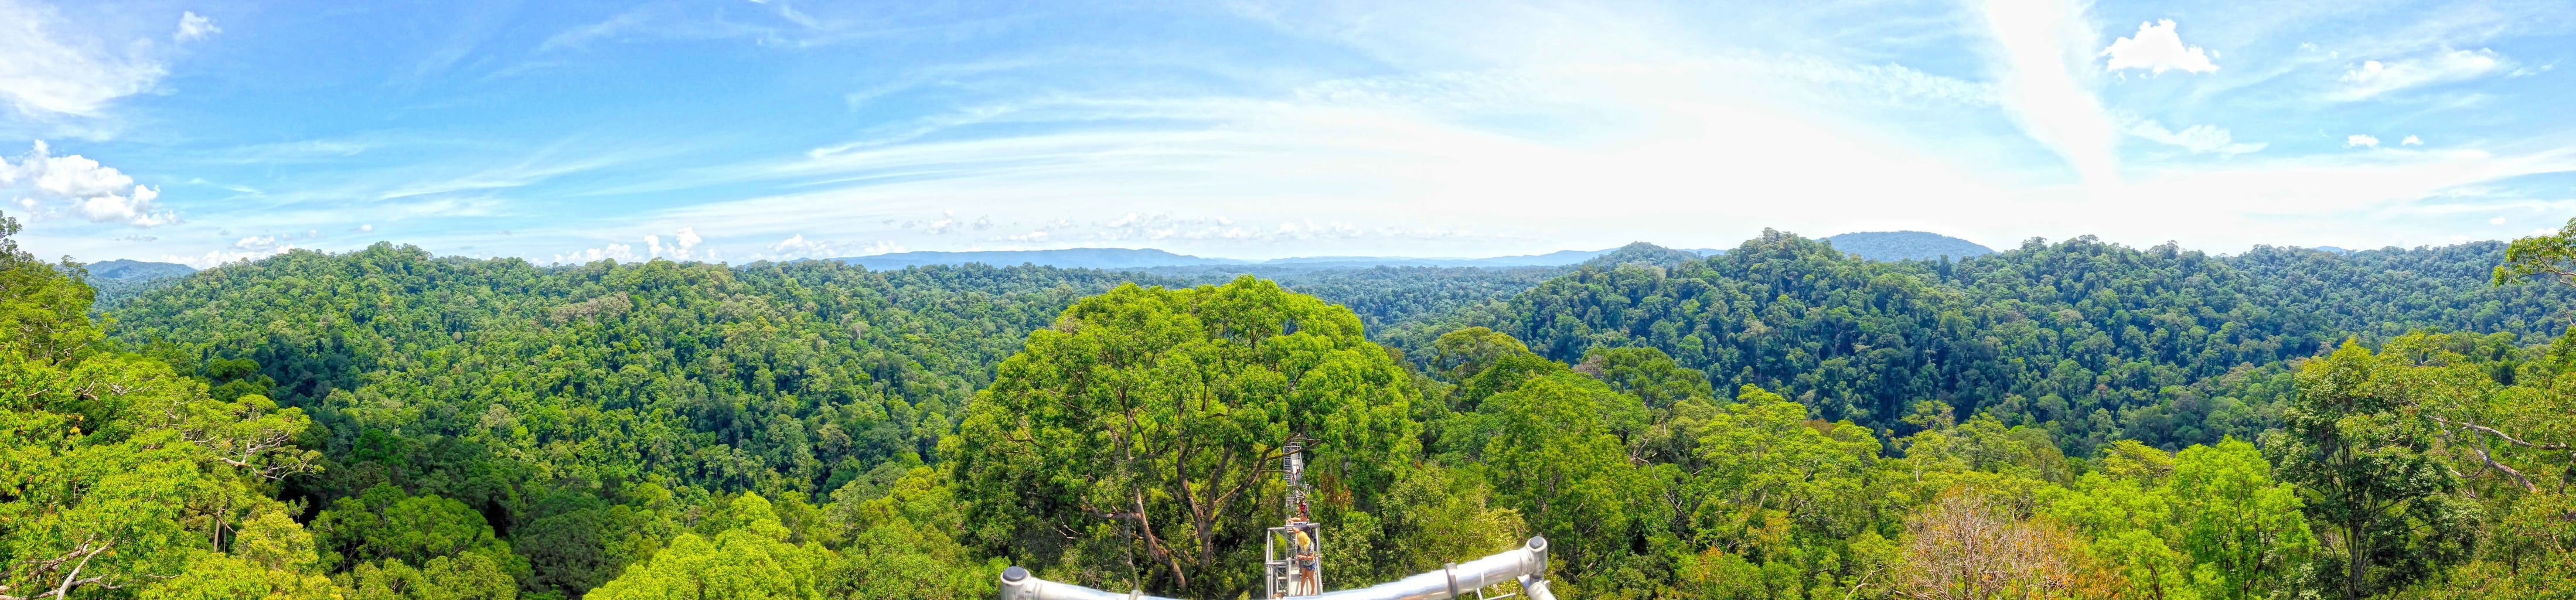 View from the top of Brunei